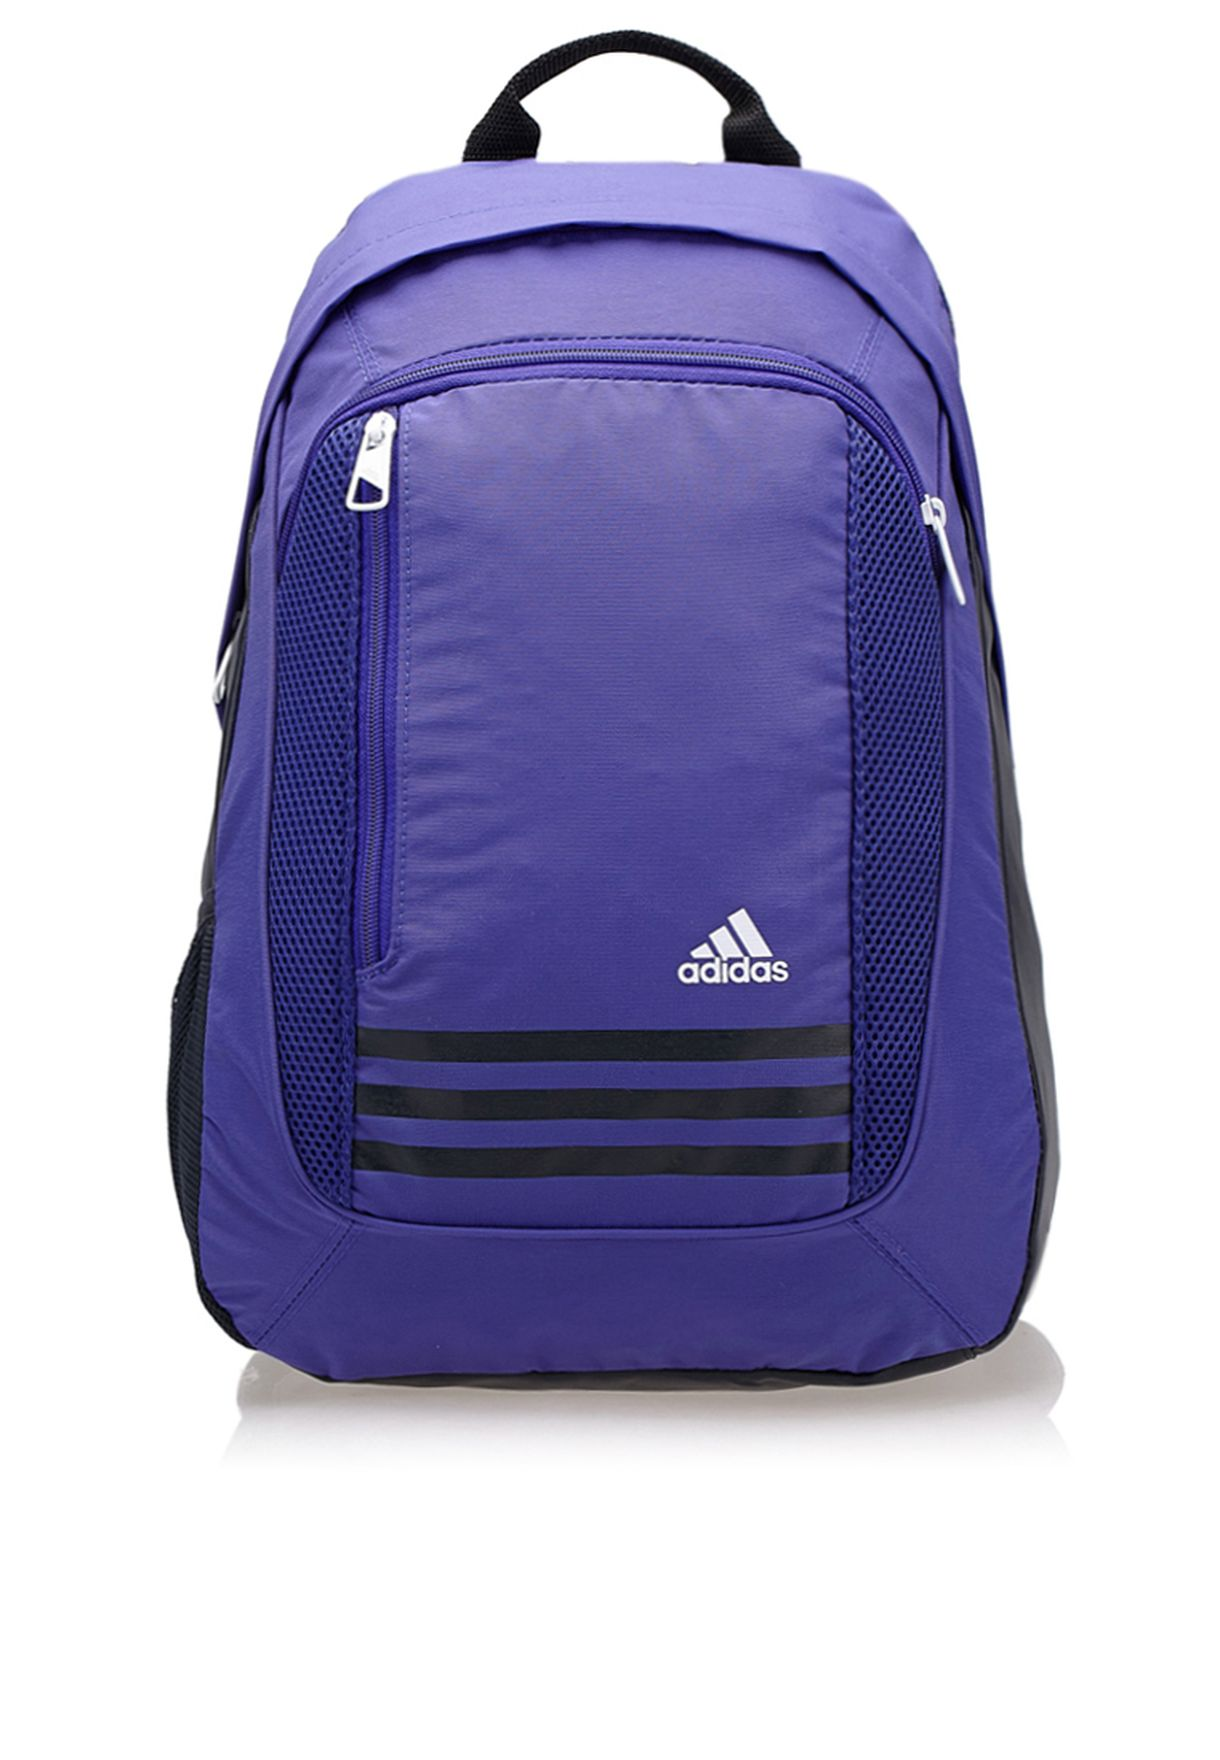 426f89aa3df4 Shop adidas purple Clima Kids Backpack M66165 for Kids in Oman -  AD476AC40RKD